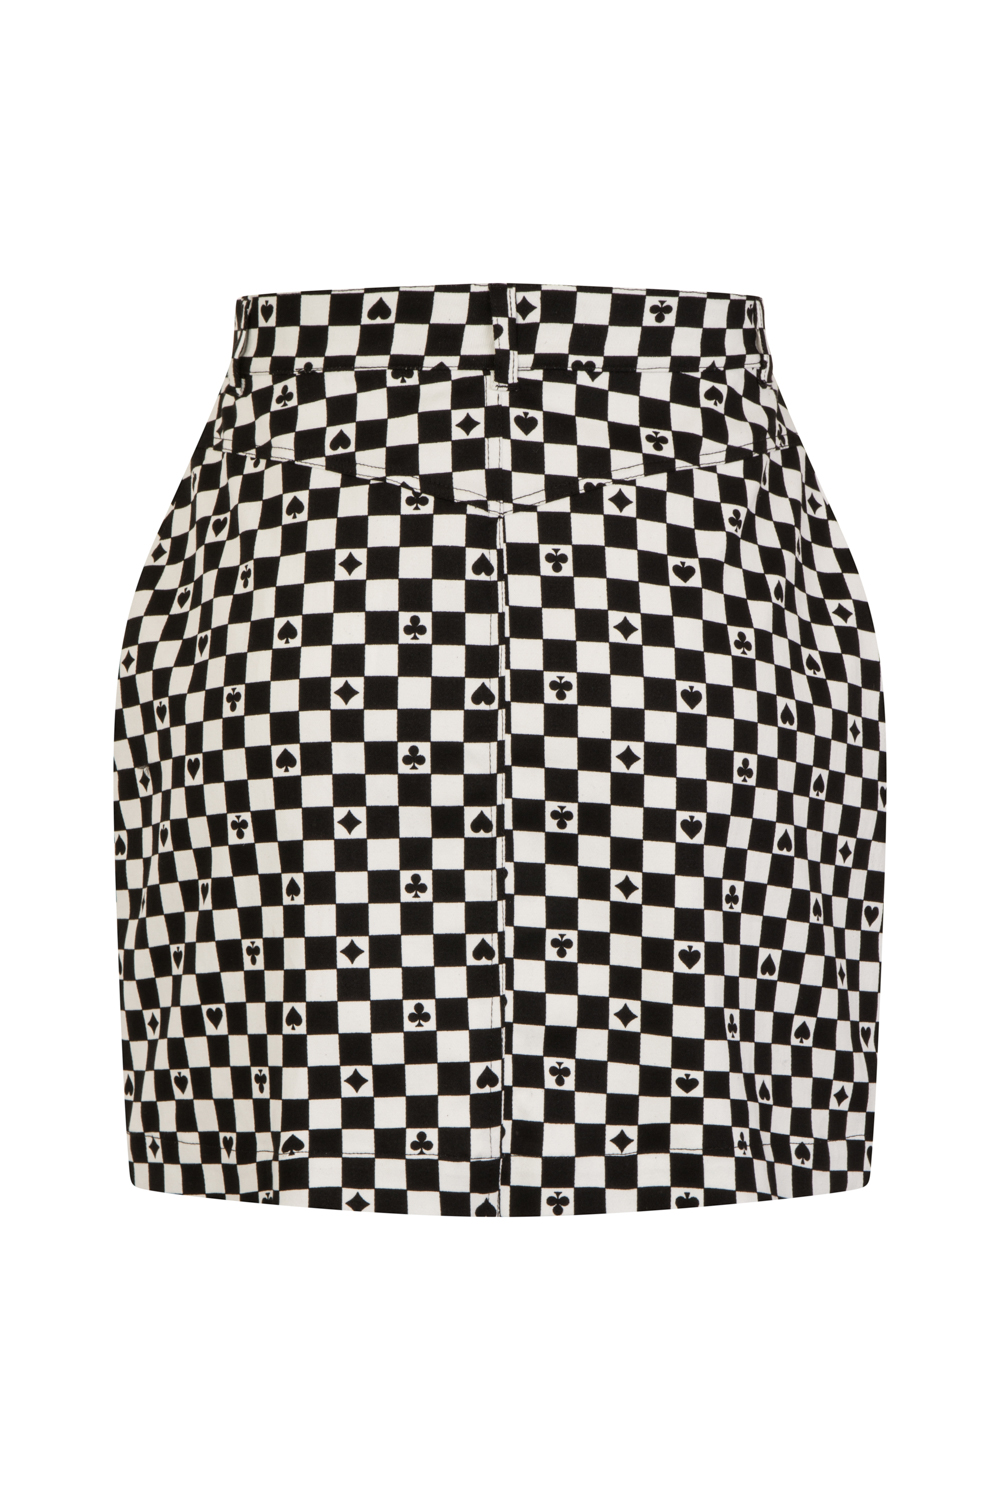 ded2c5a32 Plus Size Leather Look Mini Skirt – DACC